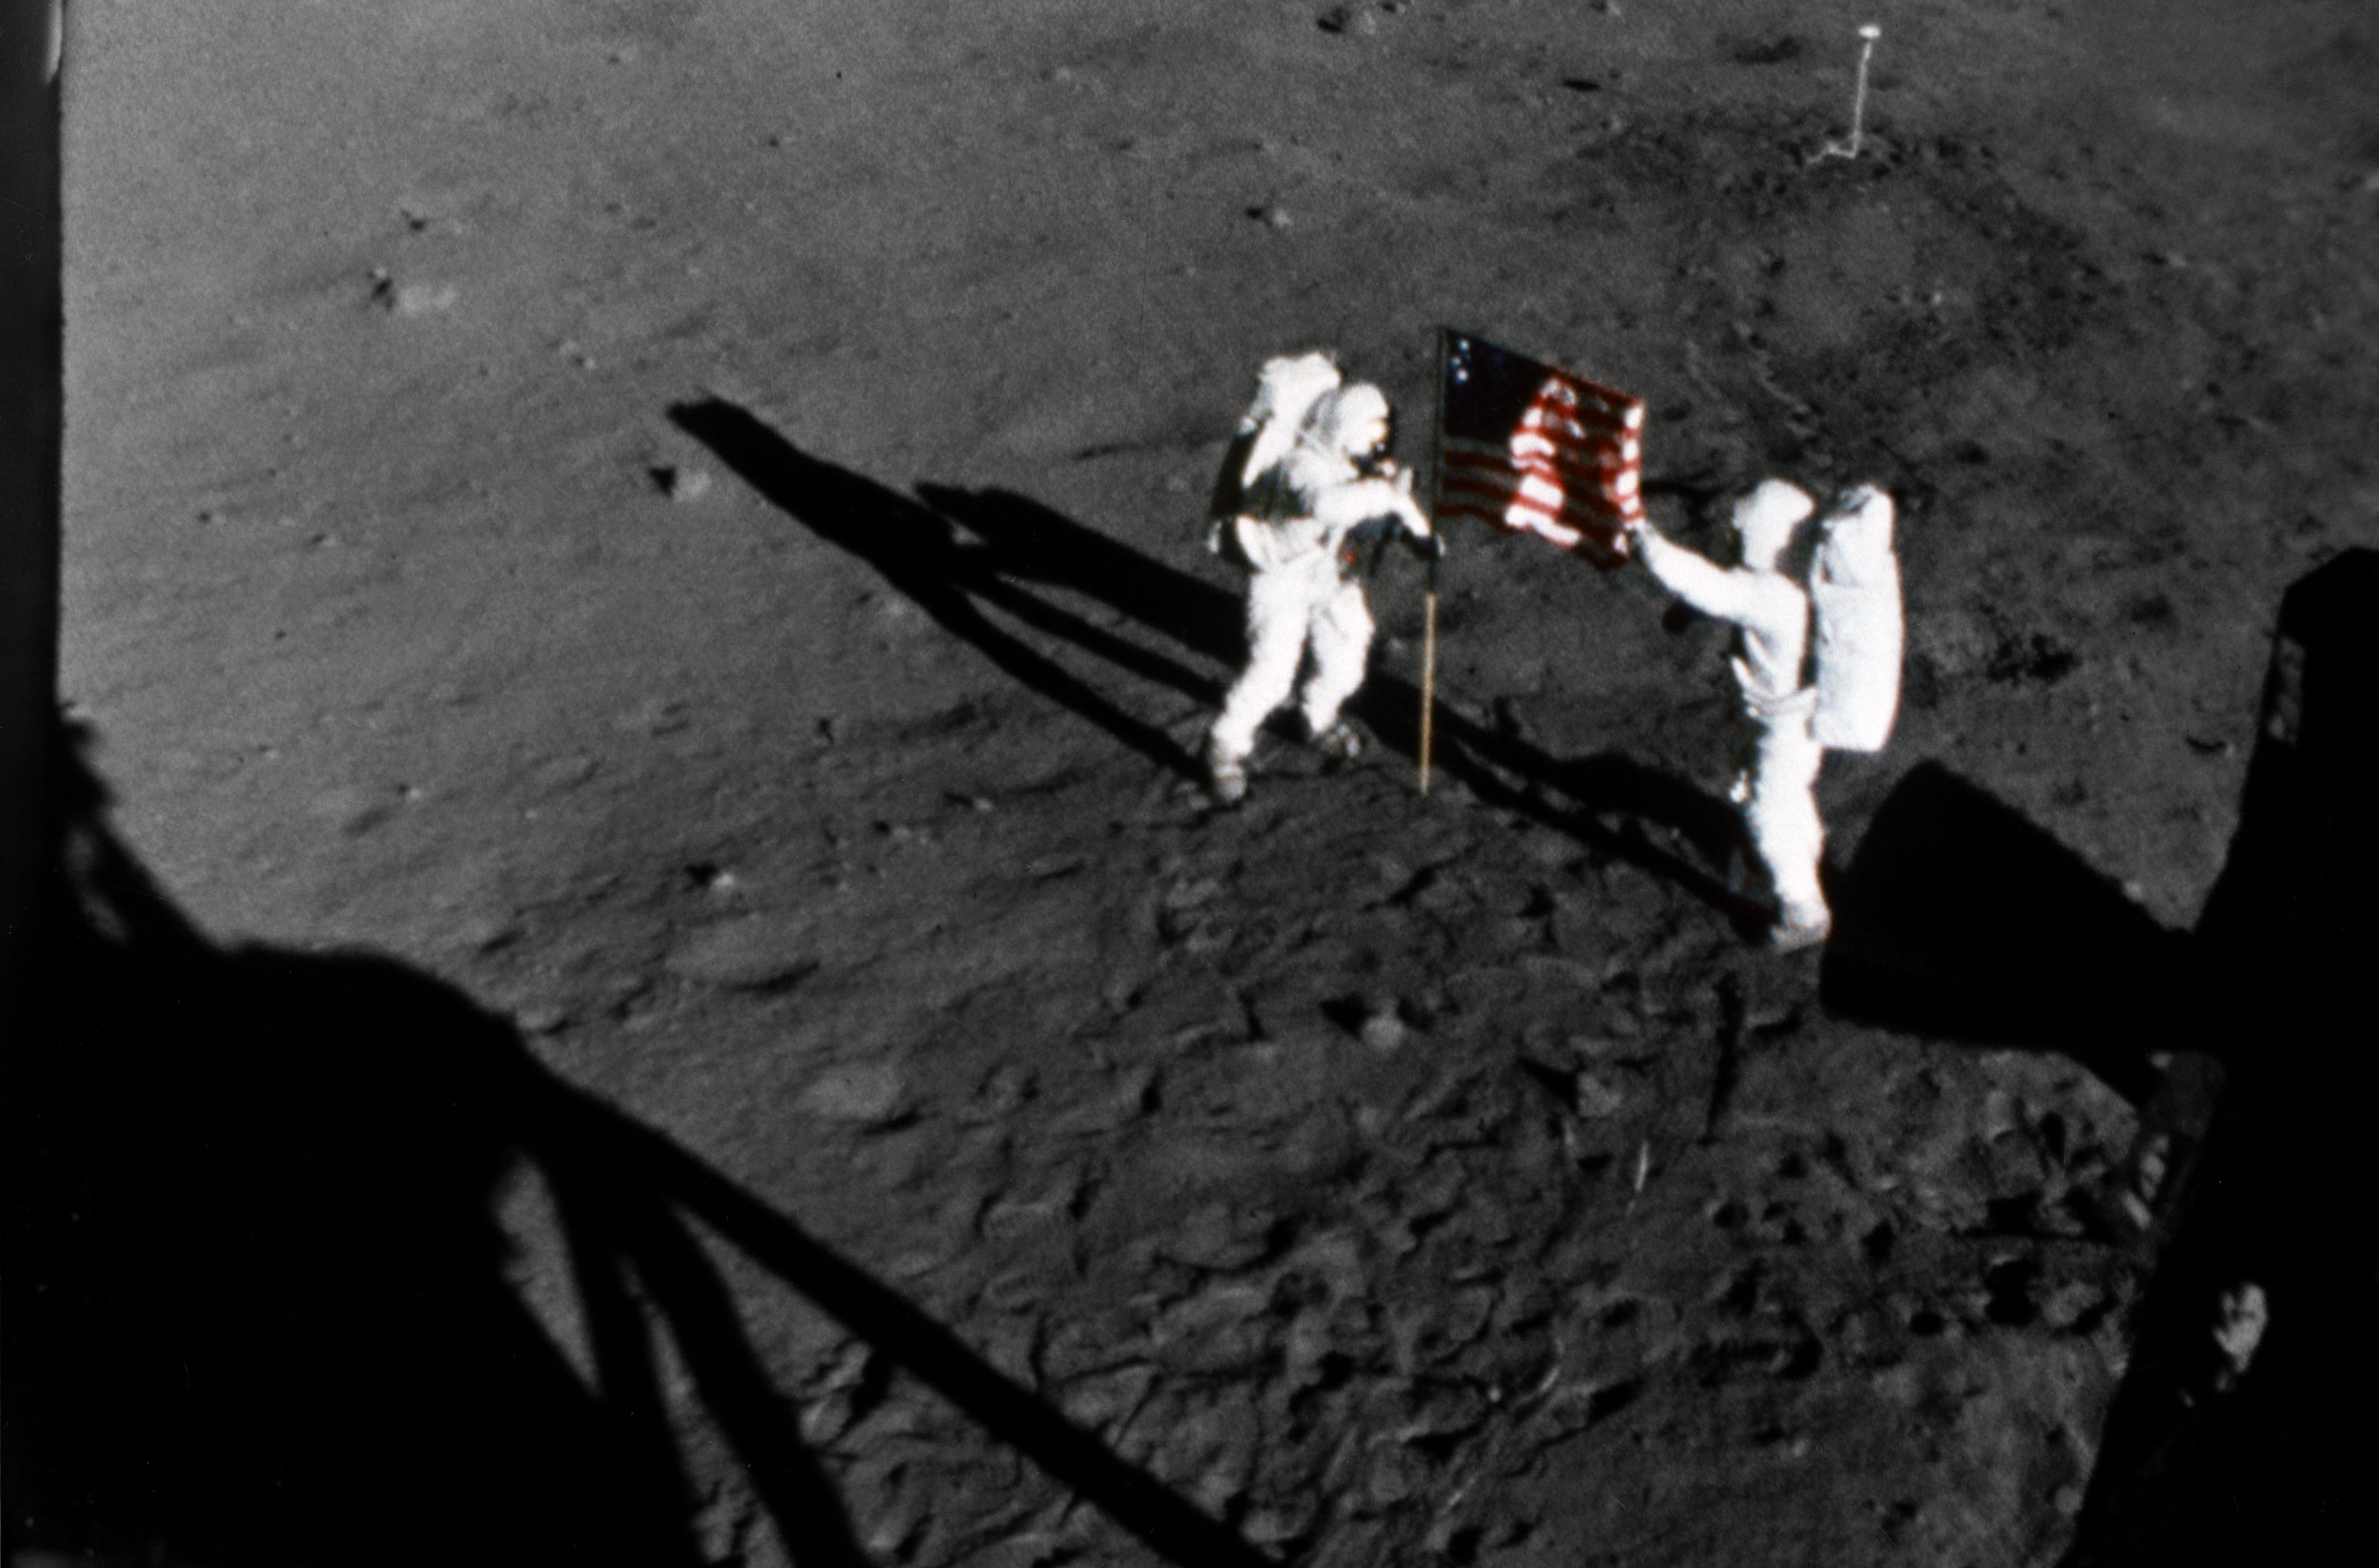 Placing the Flag on the Moon